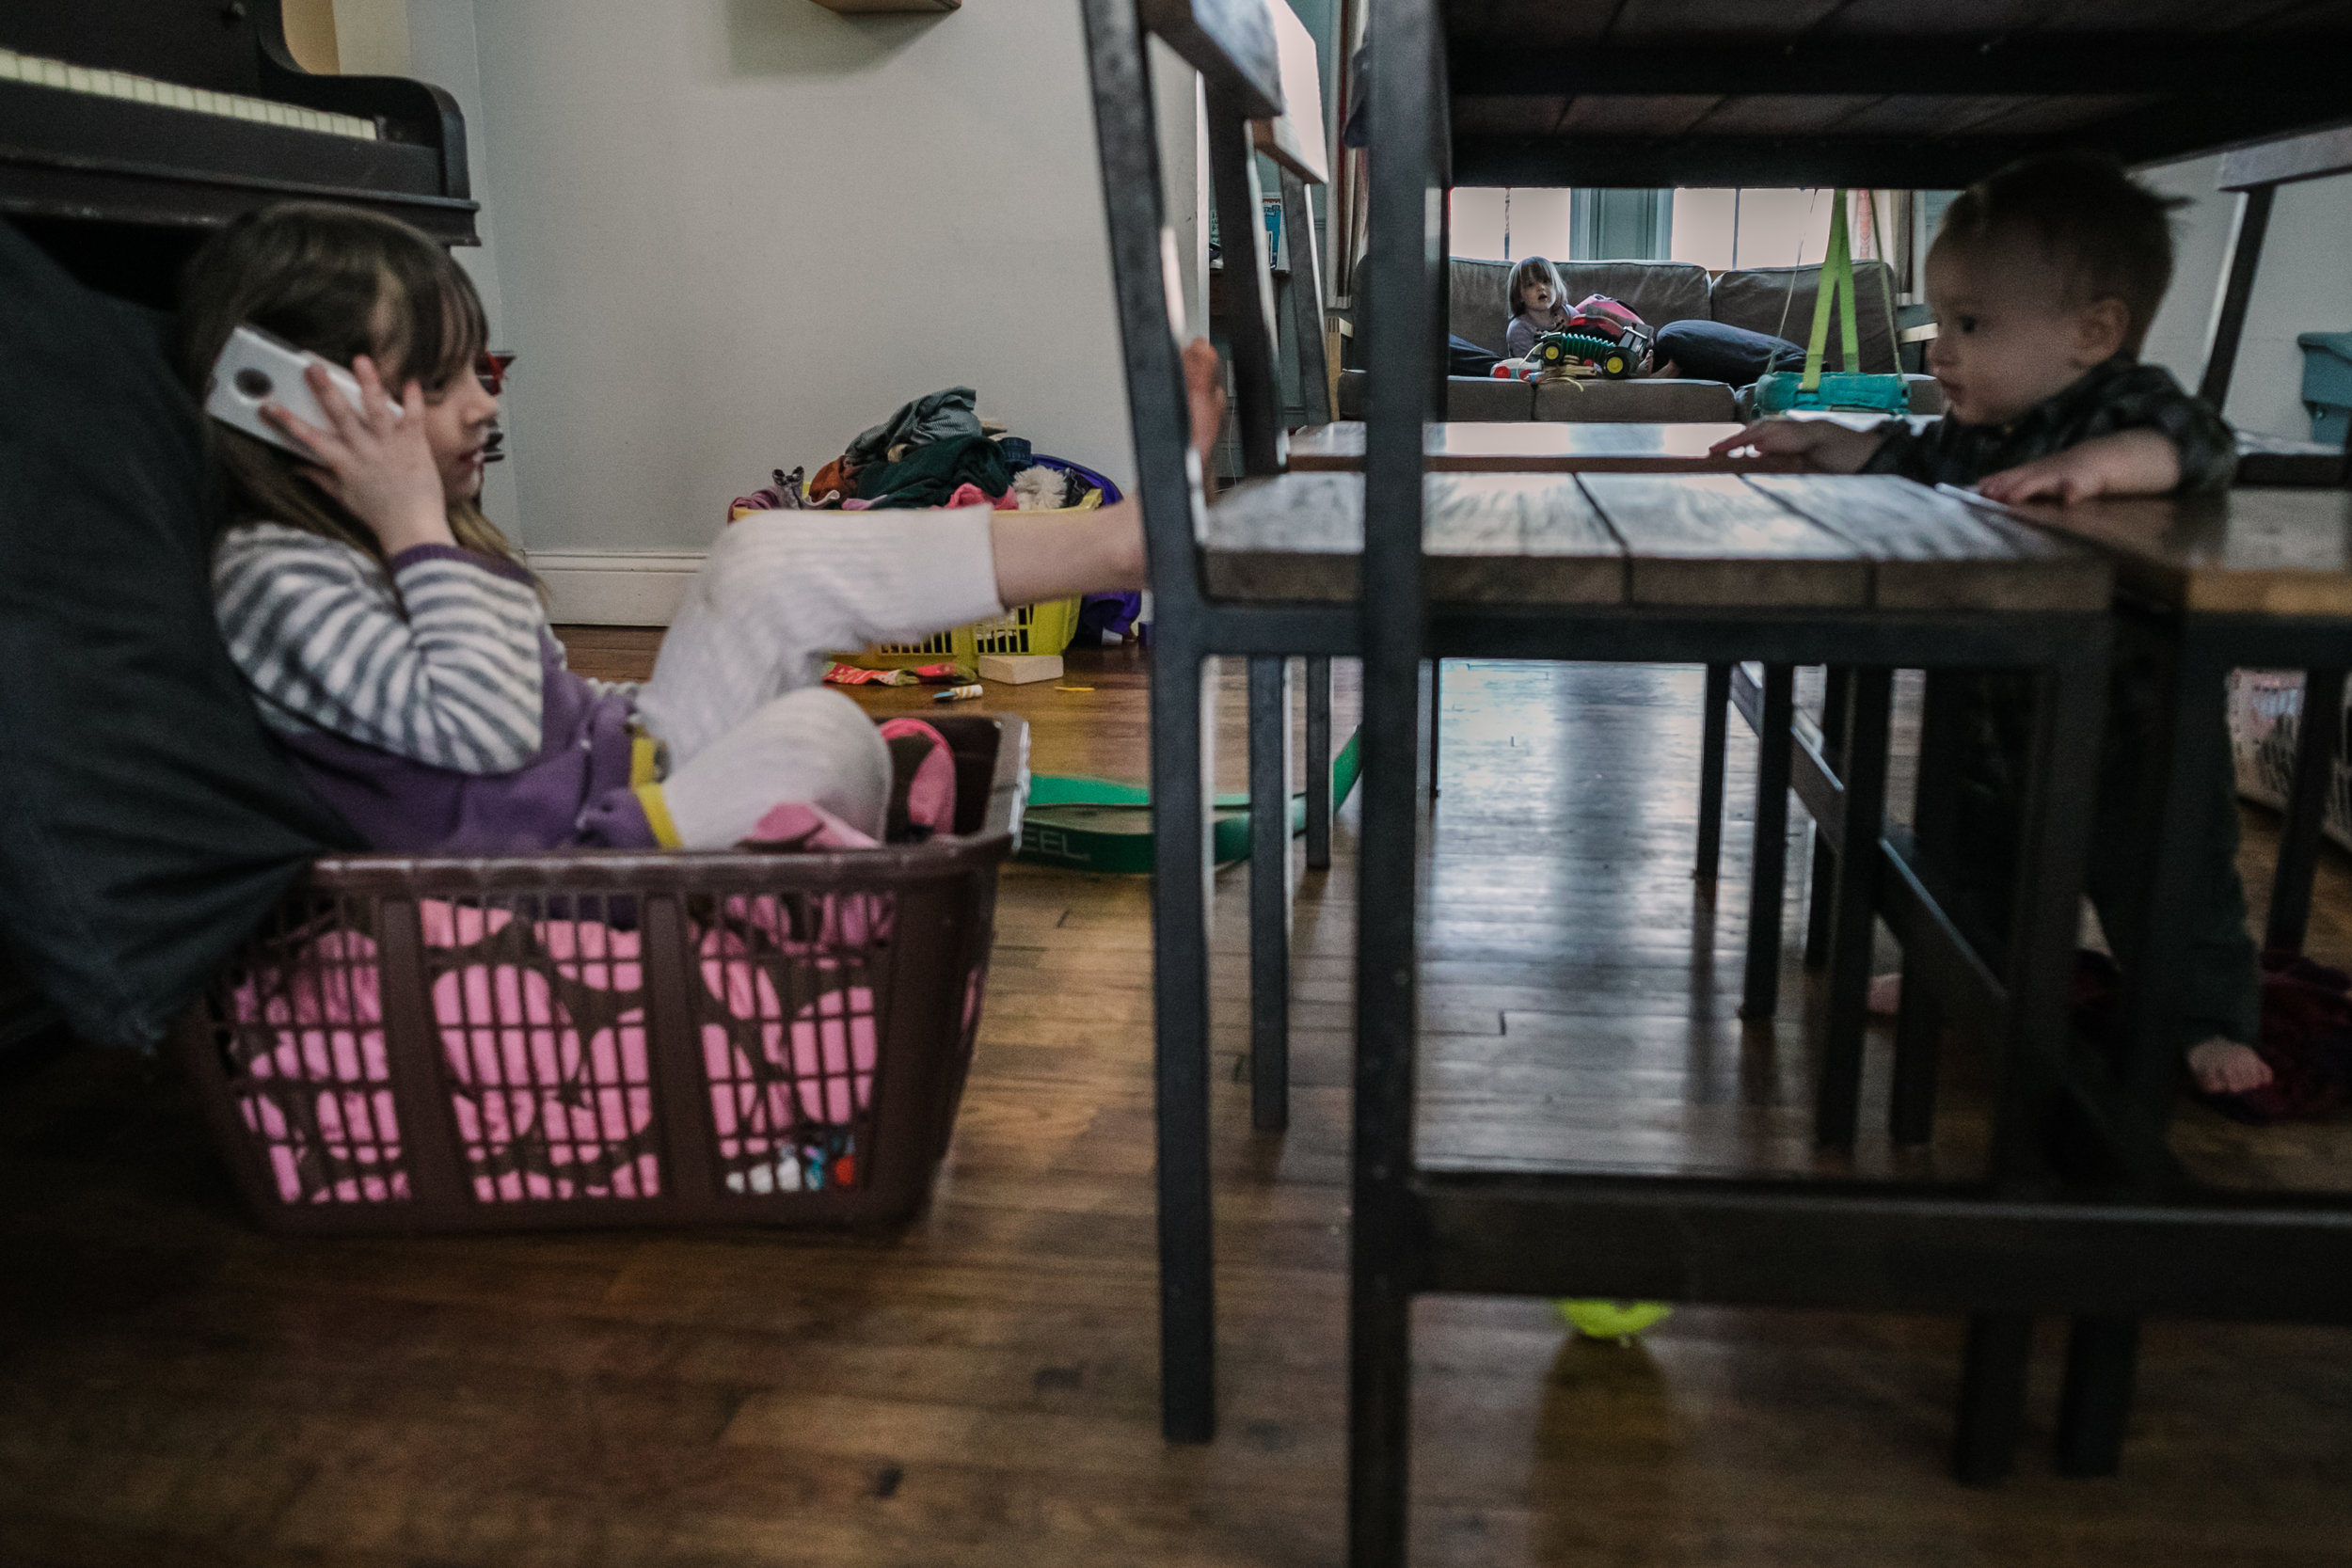 A child sits on a couch as a baby stands under a table and a girl sits in a laundry basket and talks on a phone